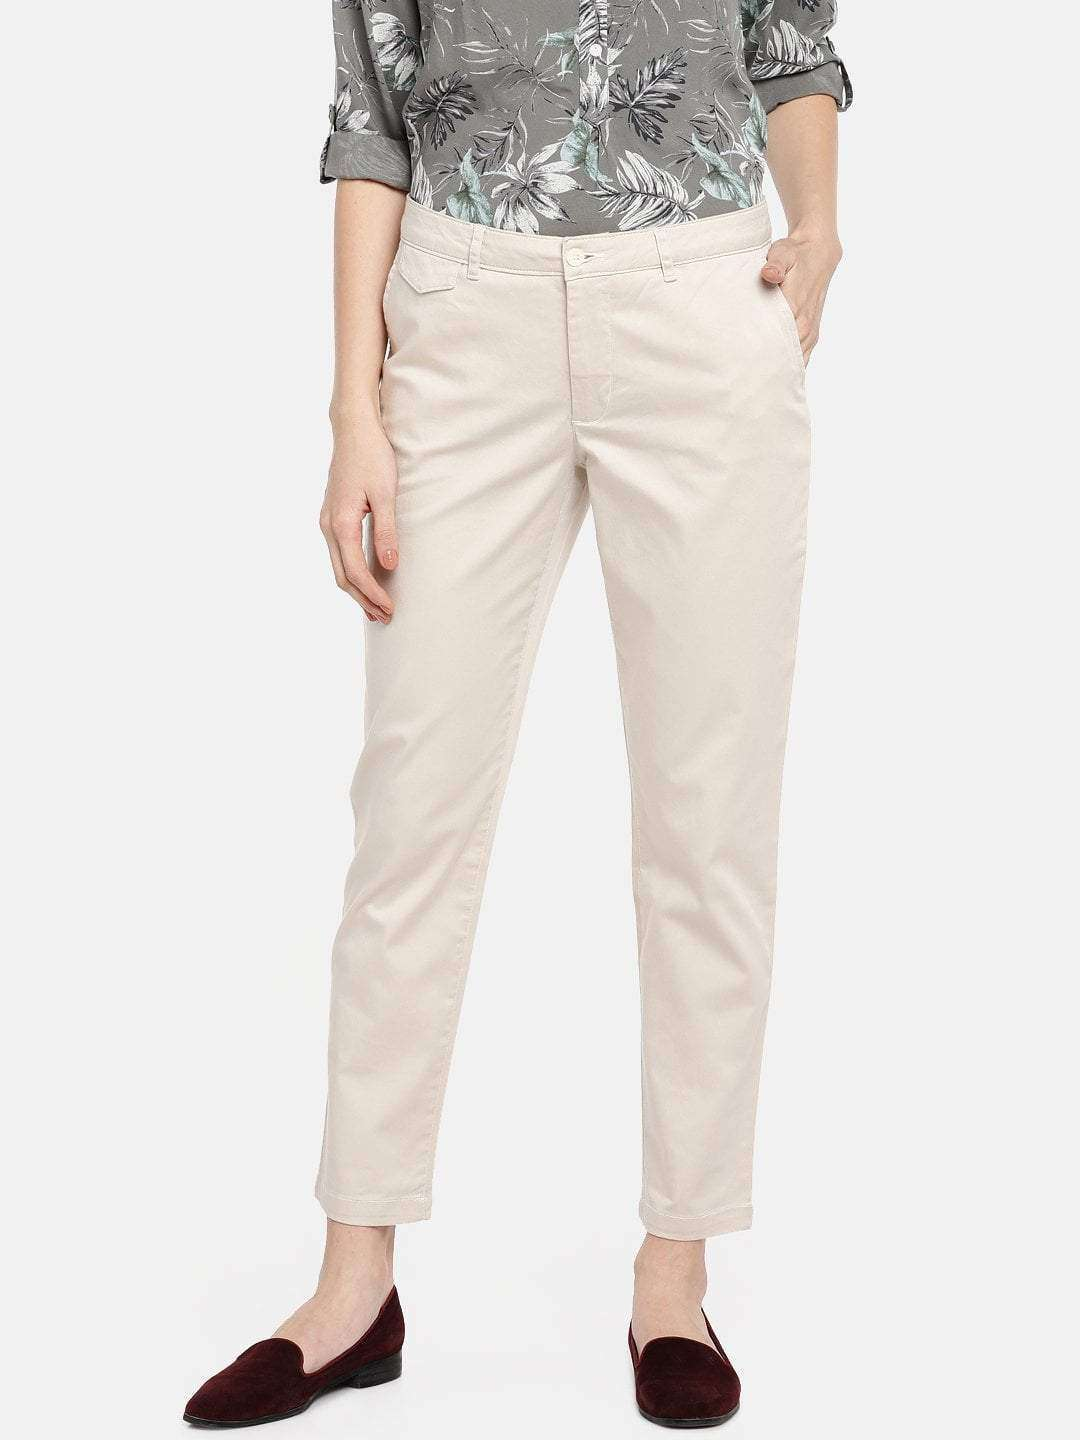 Beige Woven Pants Women S Semi Formal Wear Straight Fit Woven Pants Cottonworld You'll get full coverage when you're in the midst of a complicated sequence of poses as well as a comfortable fit when you're rocking them out and about. inr